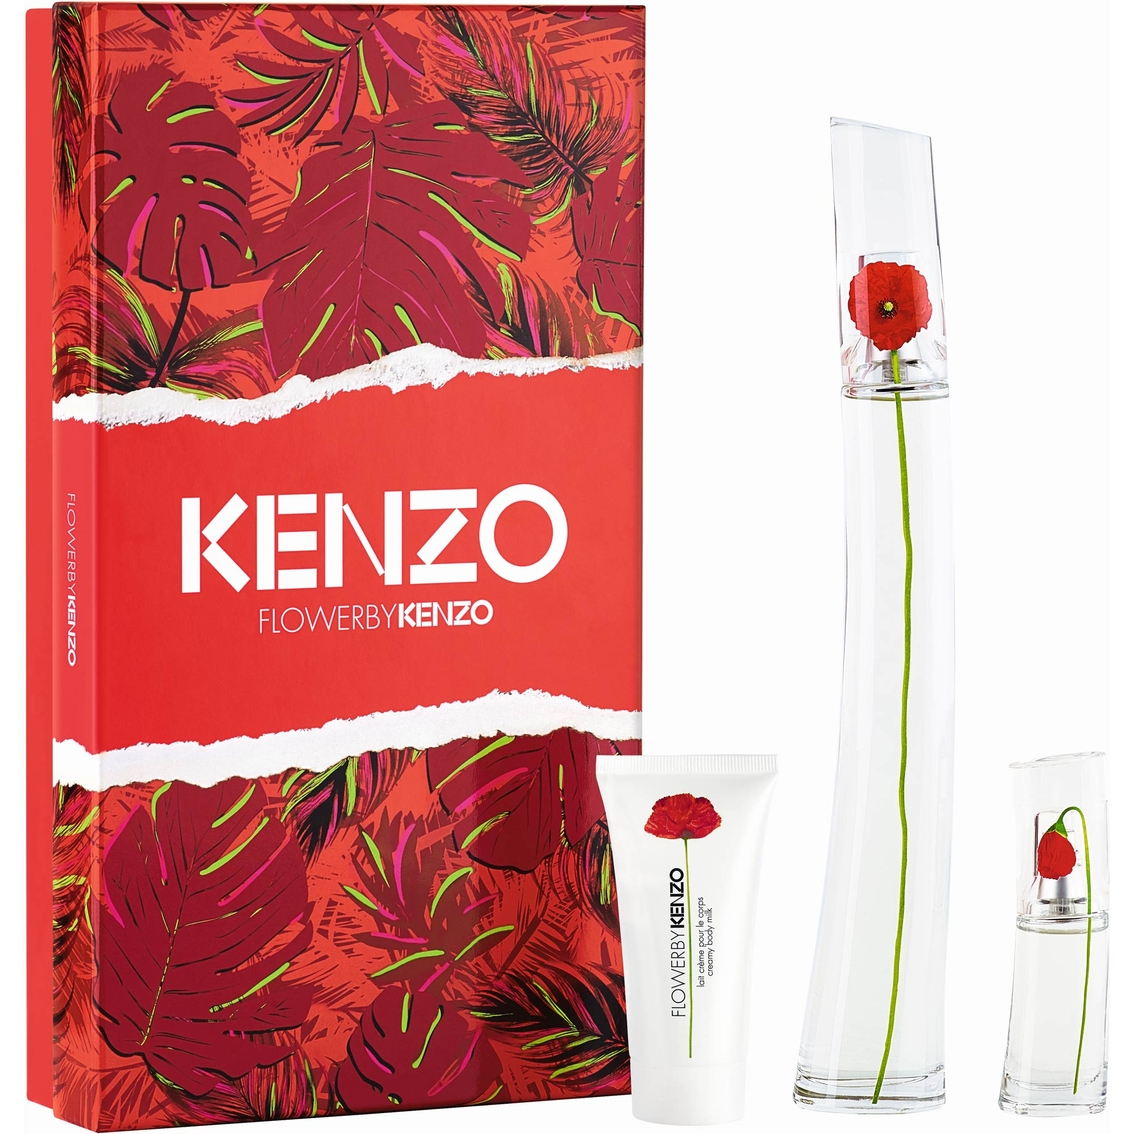 Kenzo flower eau de parfum gift set gifts sets for her beauty kenzo flower eau de parfum gift set izmirmasajfo